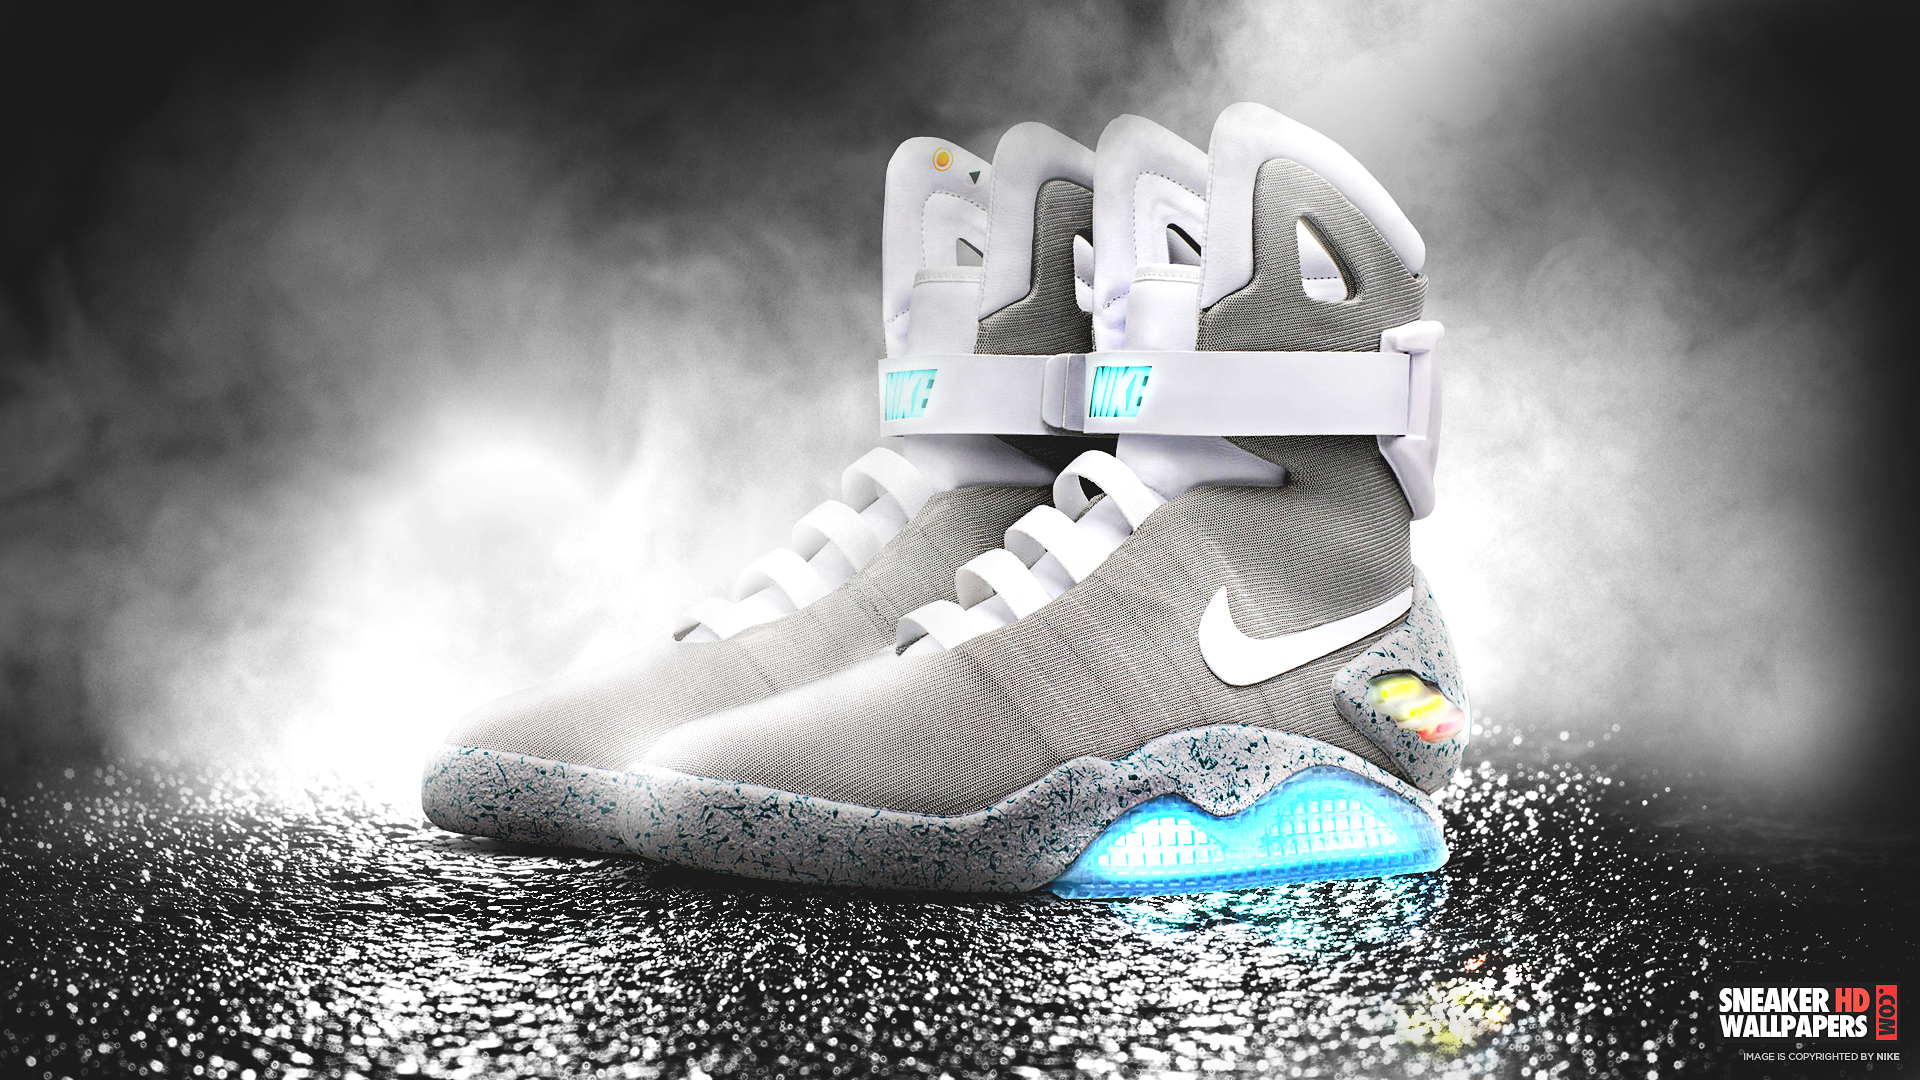 taller Hábil Compatible con  SneakerHDWallpapers.com – Your favorite sneakers in 4K, Retina, Mobile and  HD wallpaper resolutions! » Blog Archive 2016 Nike Air Mag wallpaper! -  SneakerHDWallpapers.com - Your favorite sneakers in 4K, Retina, Mobile and